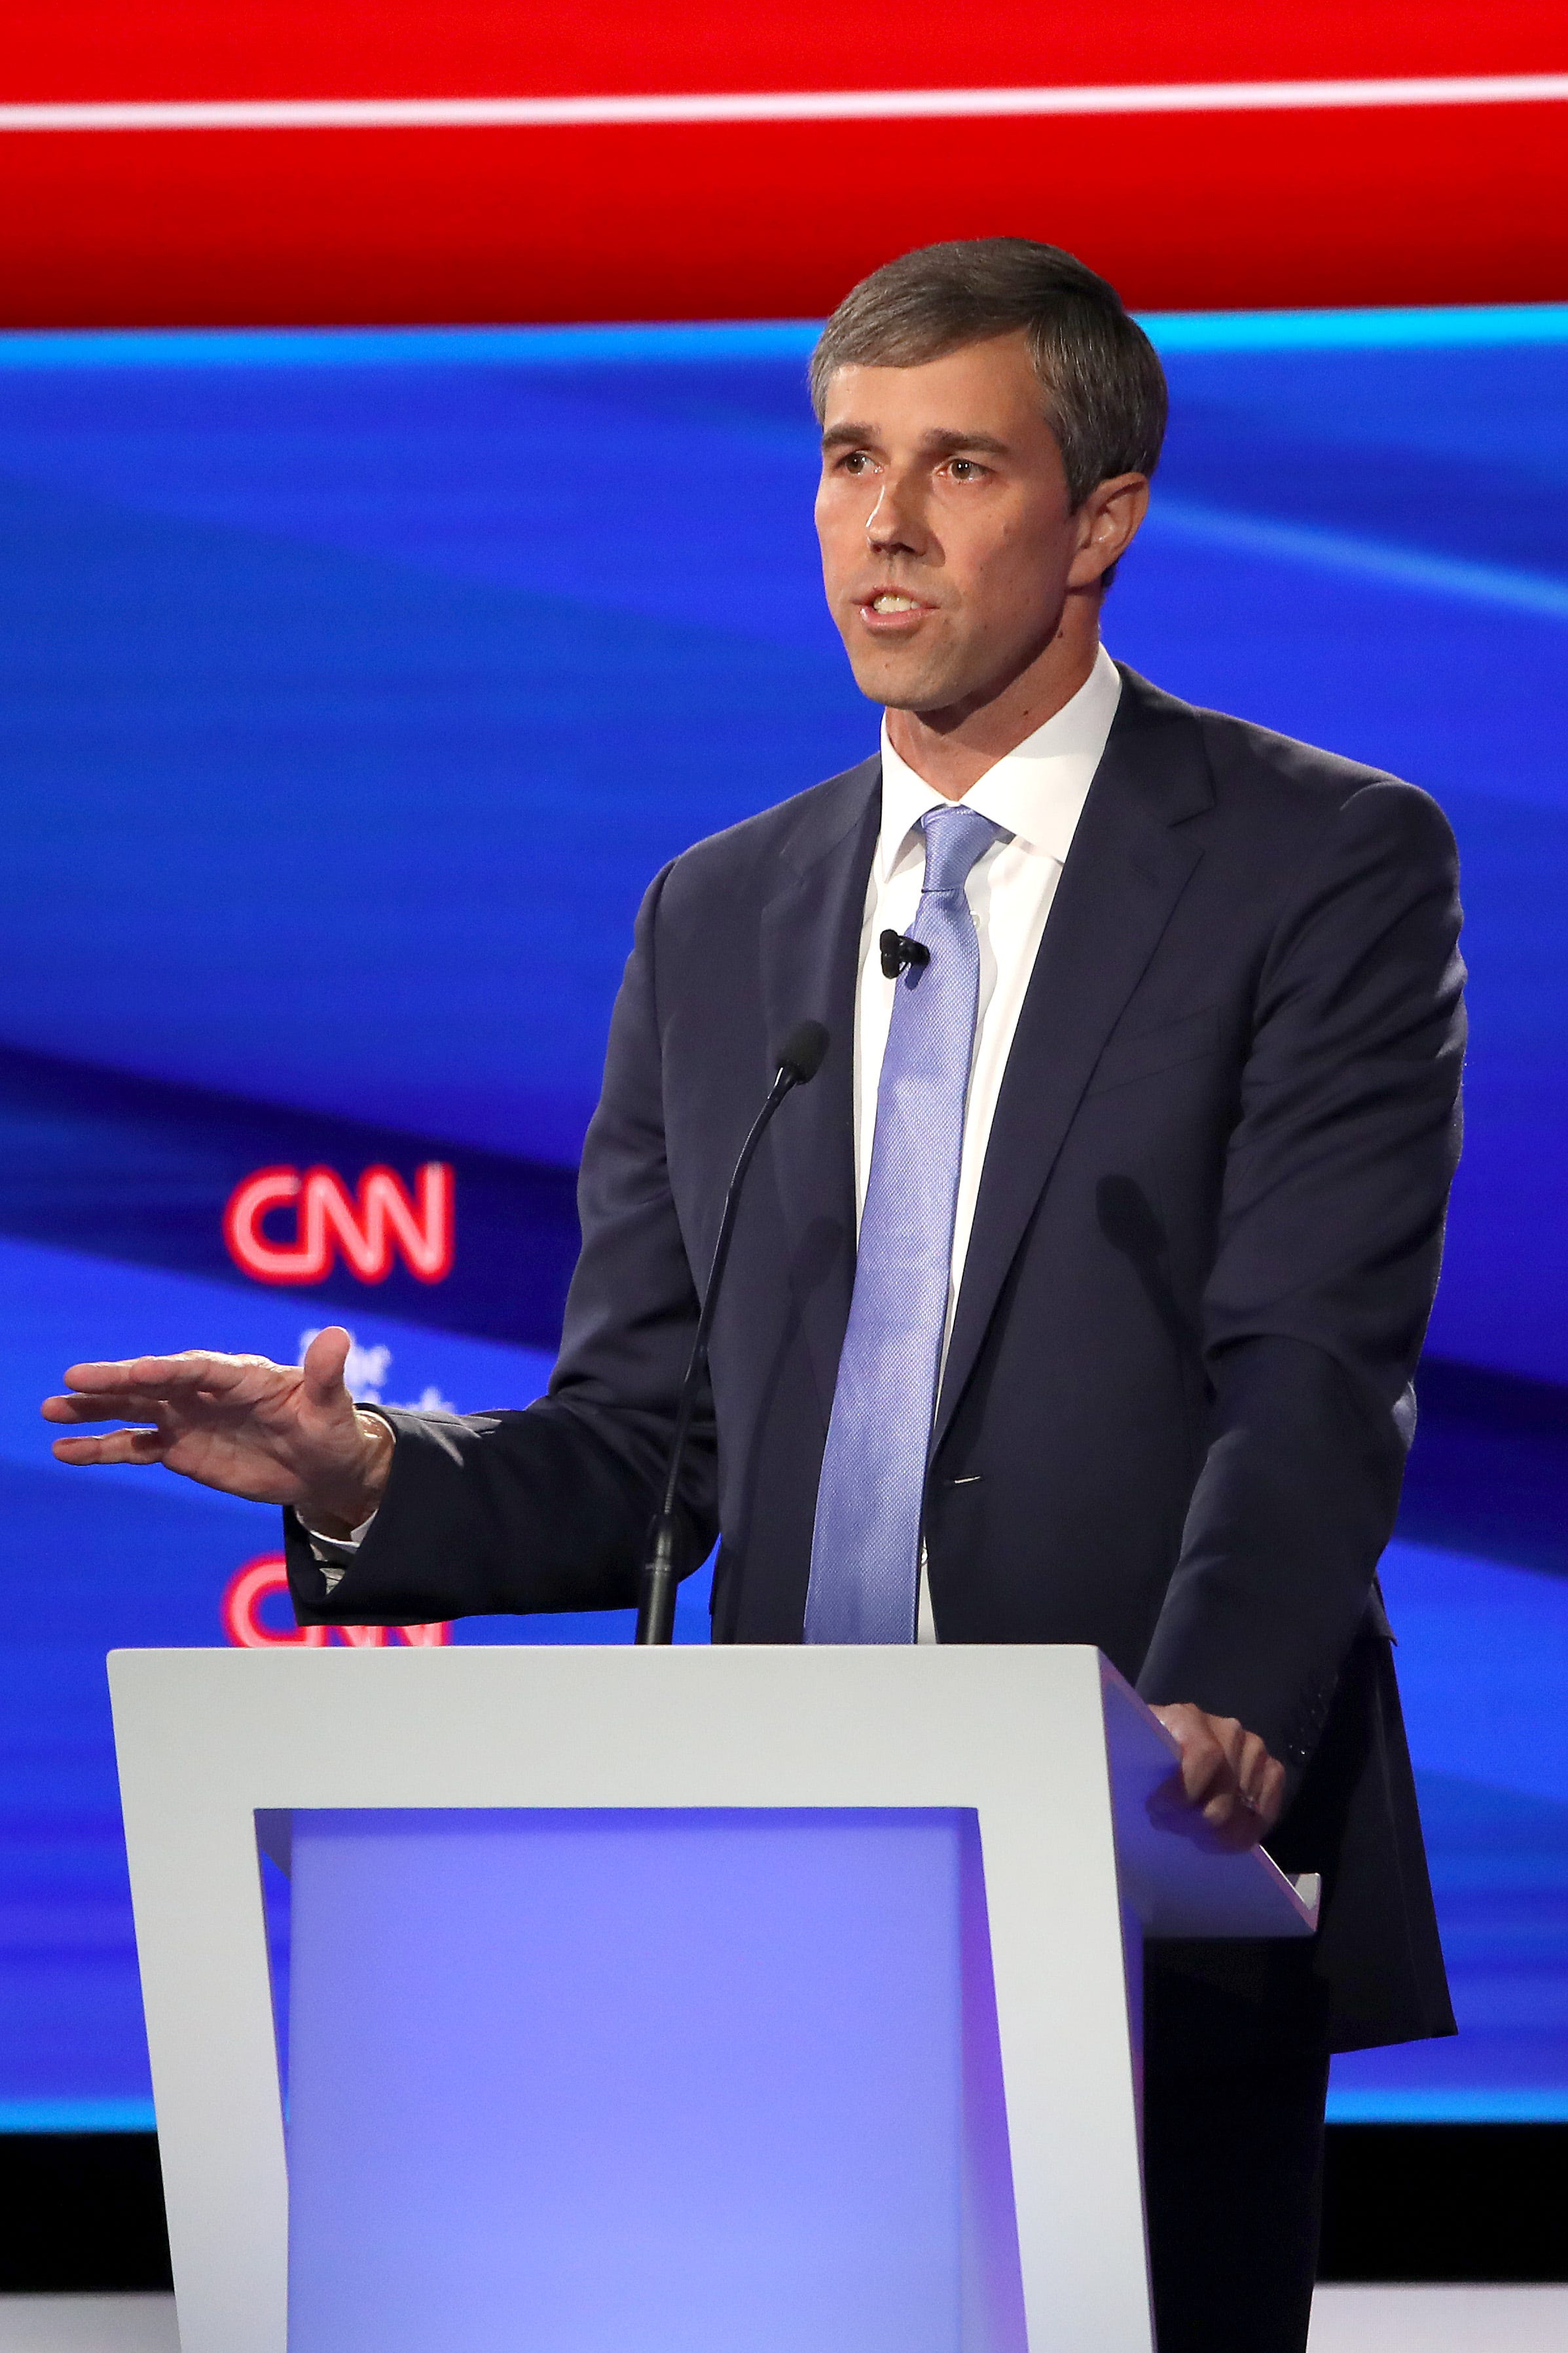 Beto O'Rourke defends plan to confiscate assault-style weapons